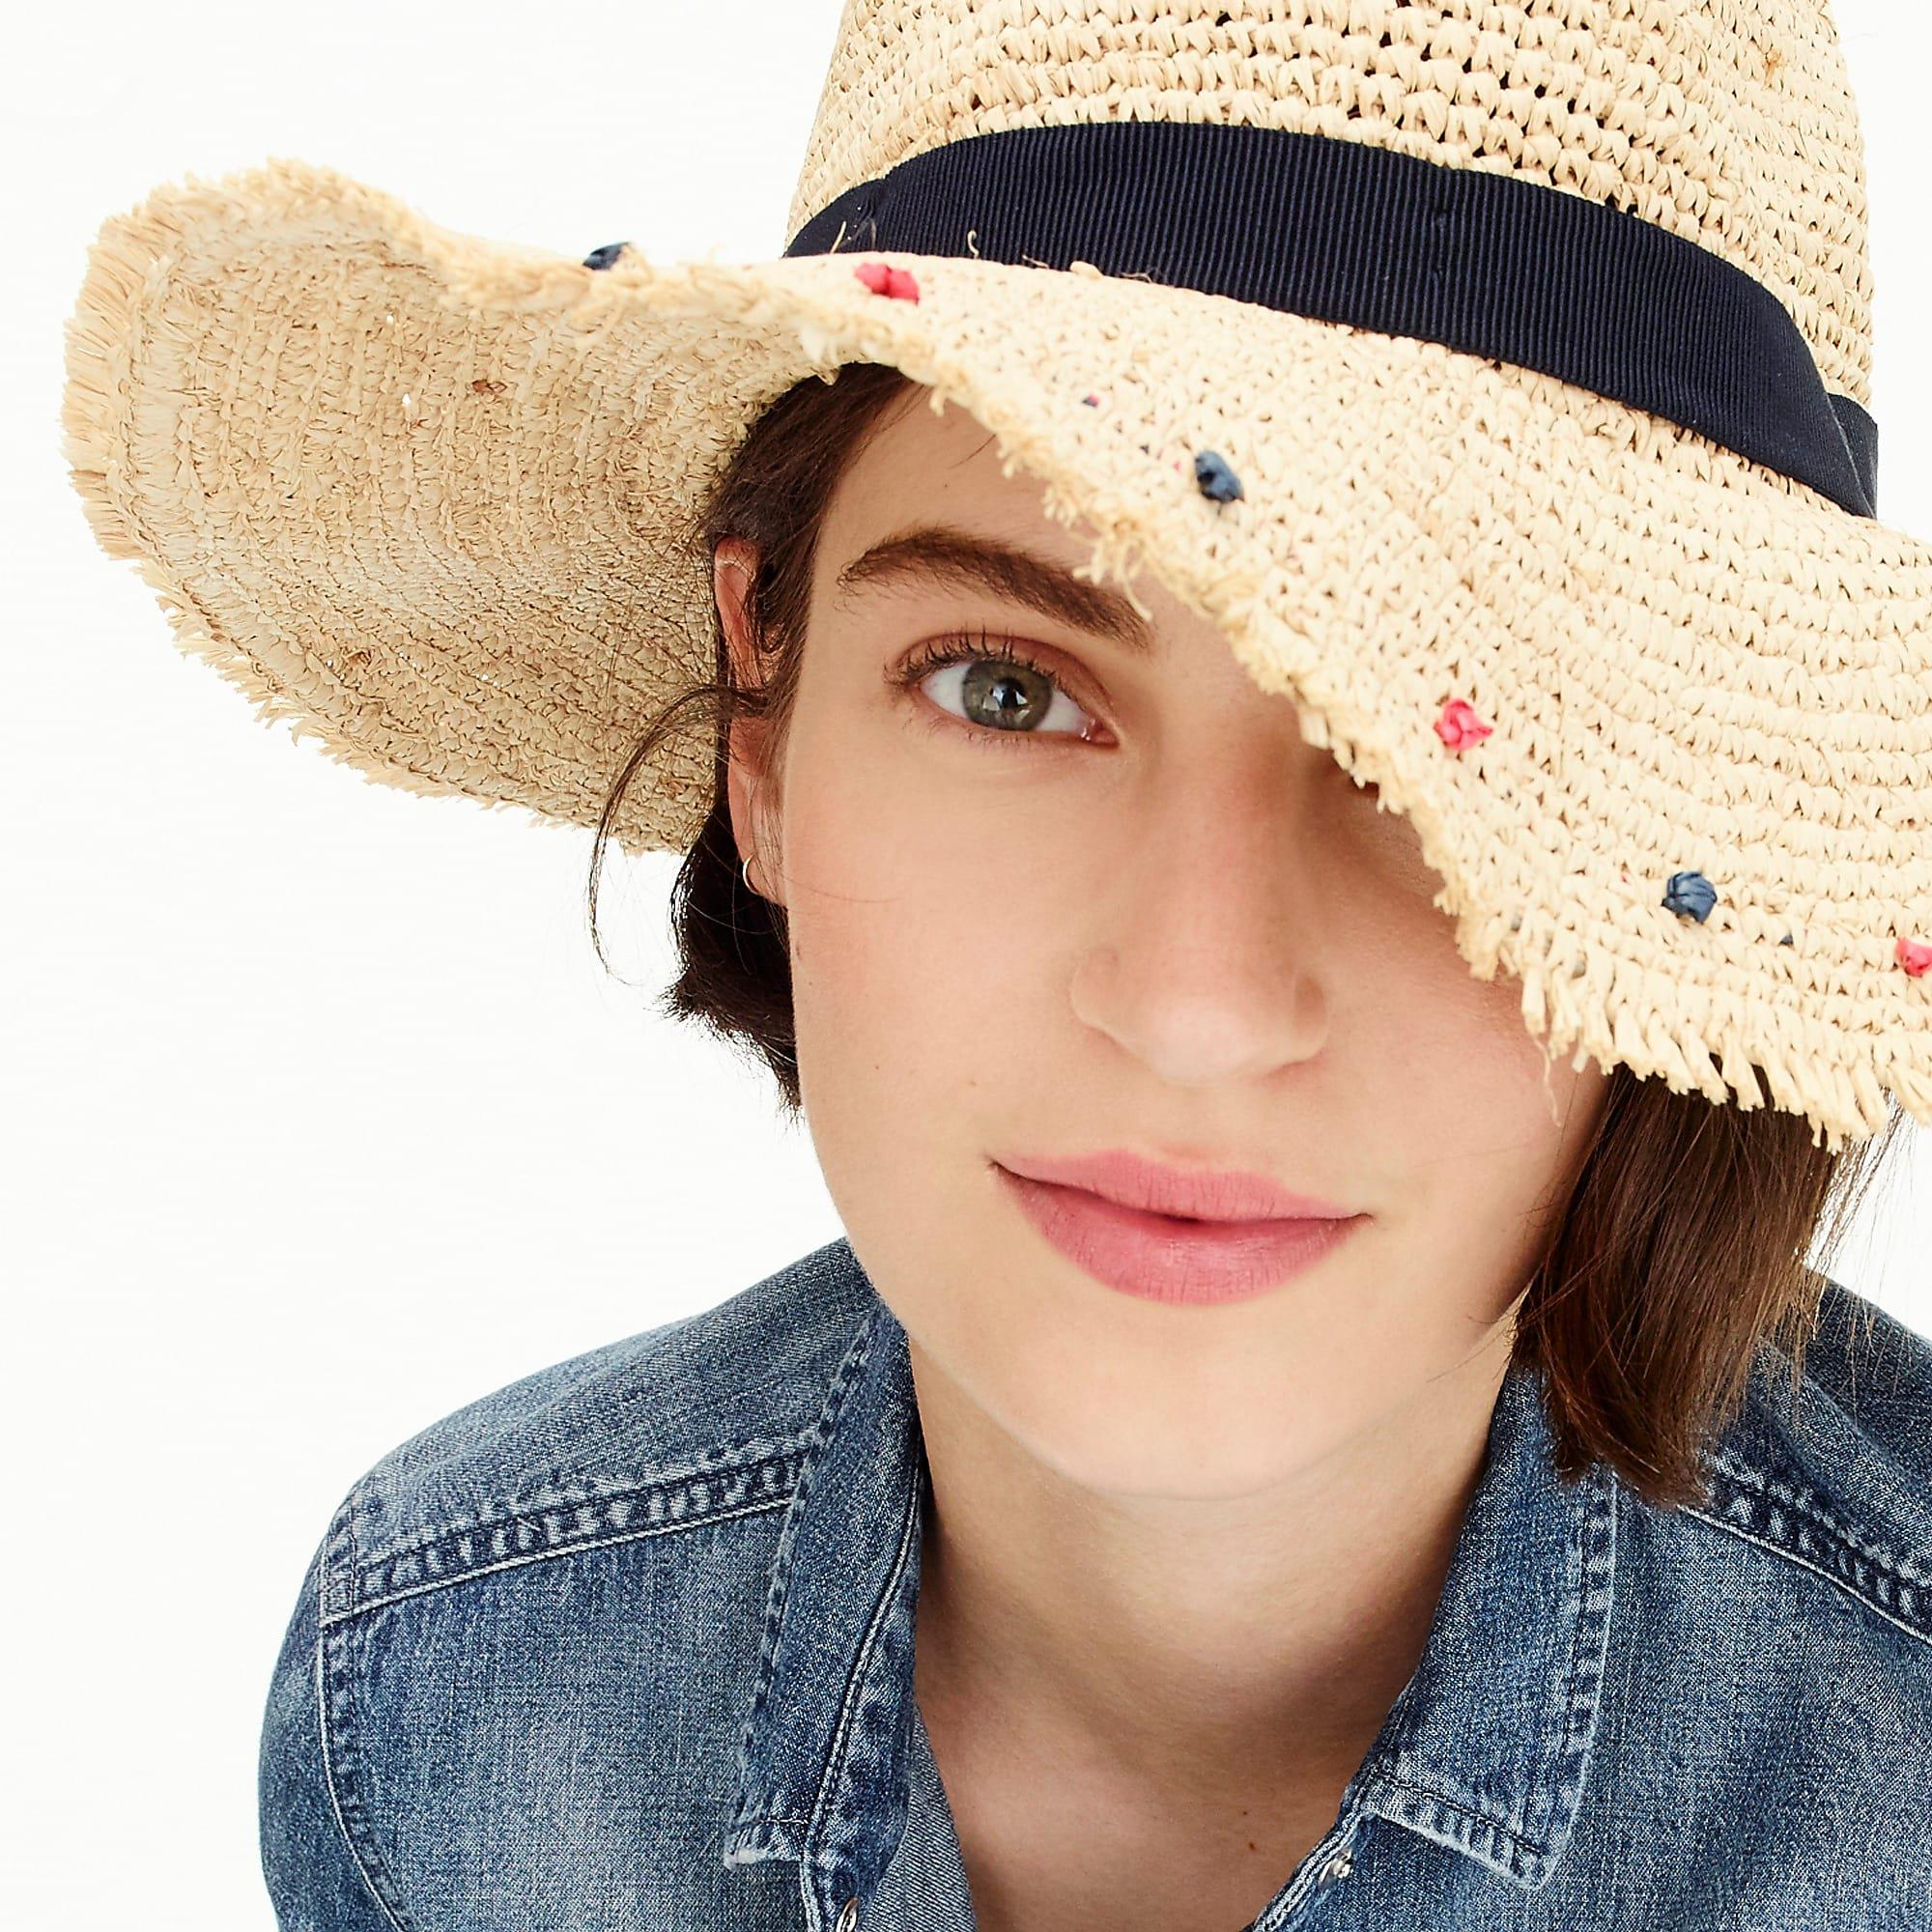 70069fbb547c6 J.Crew - Blue Embellished Packable Straw Hat - Lyst. View fullscreen